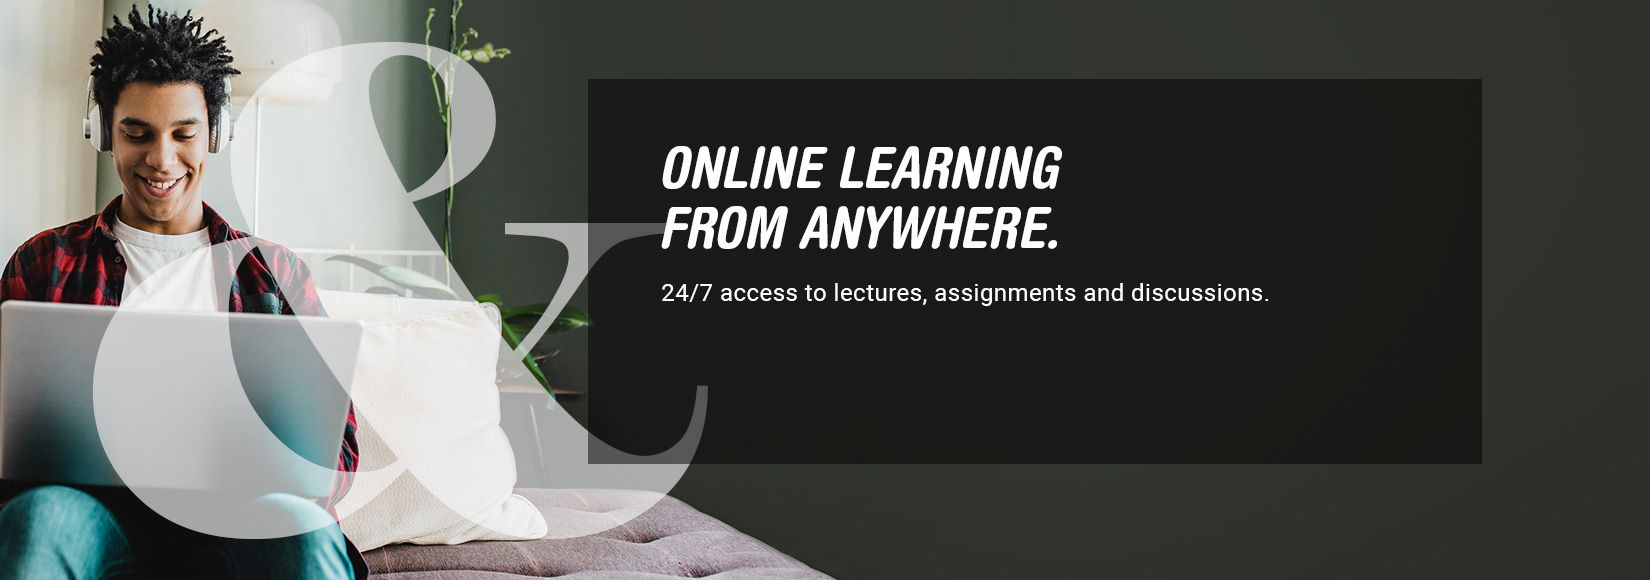 Online Learning from Anywhere